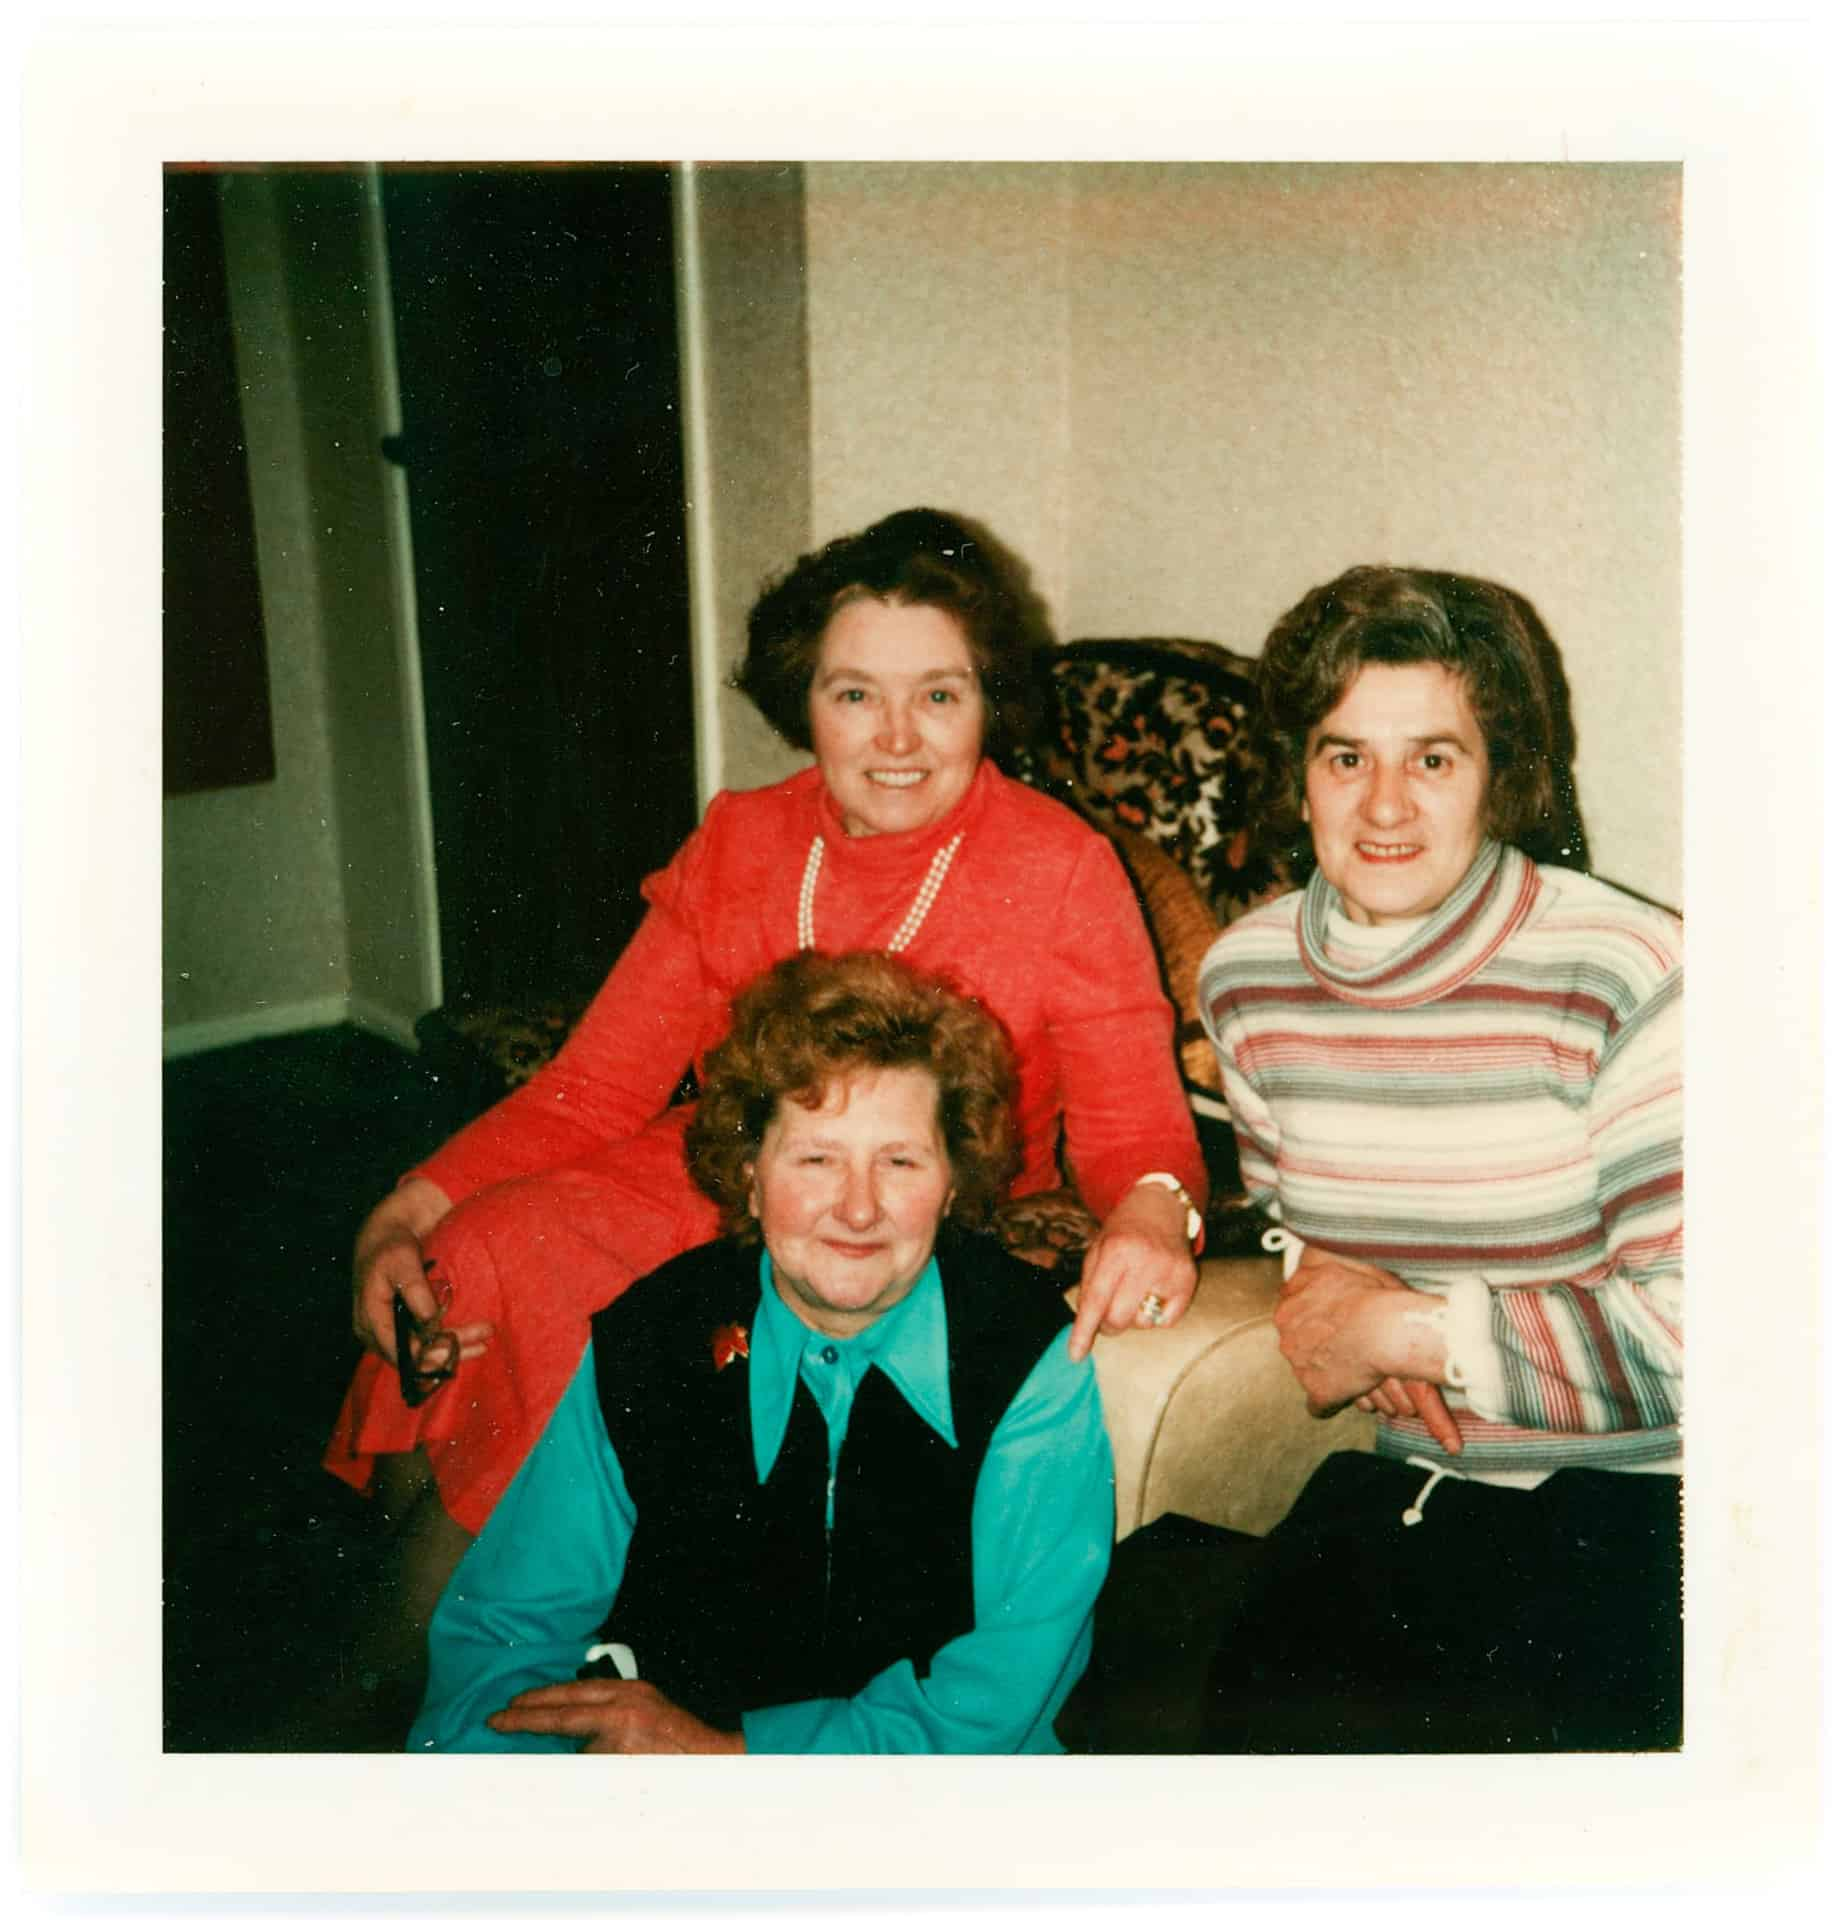 Aunt Rene (in red) and Aunt Joyce with Mom in the foreground 1970s